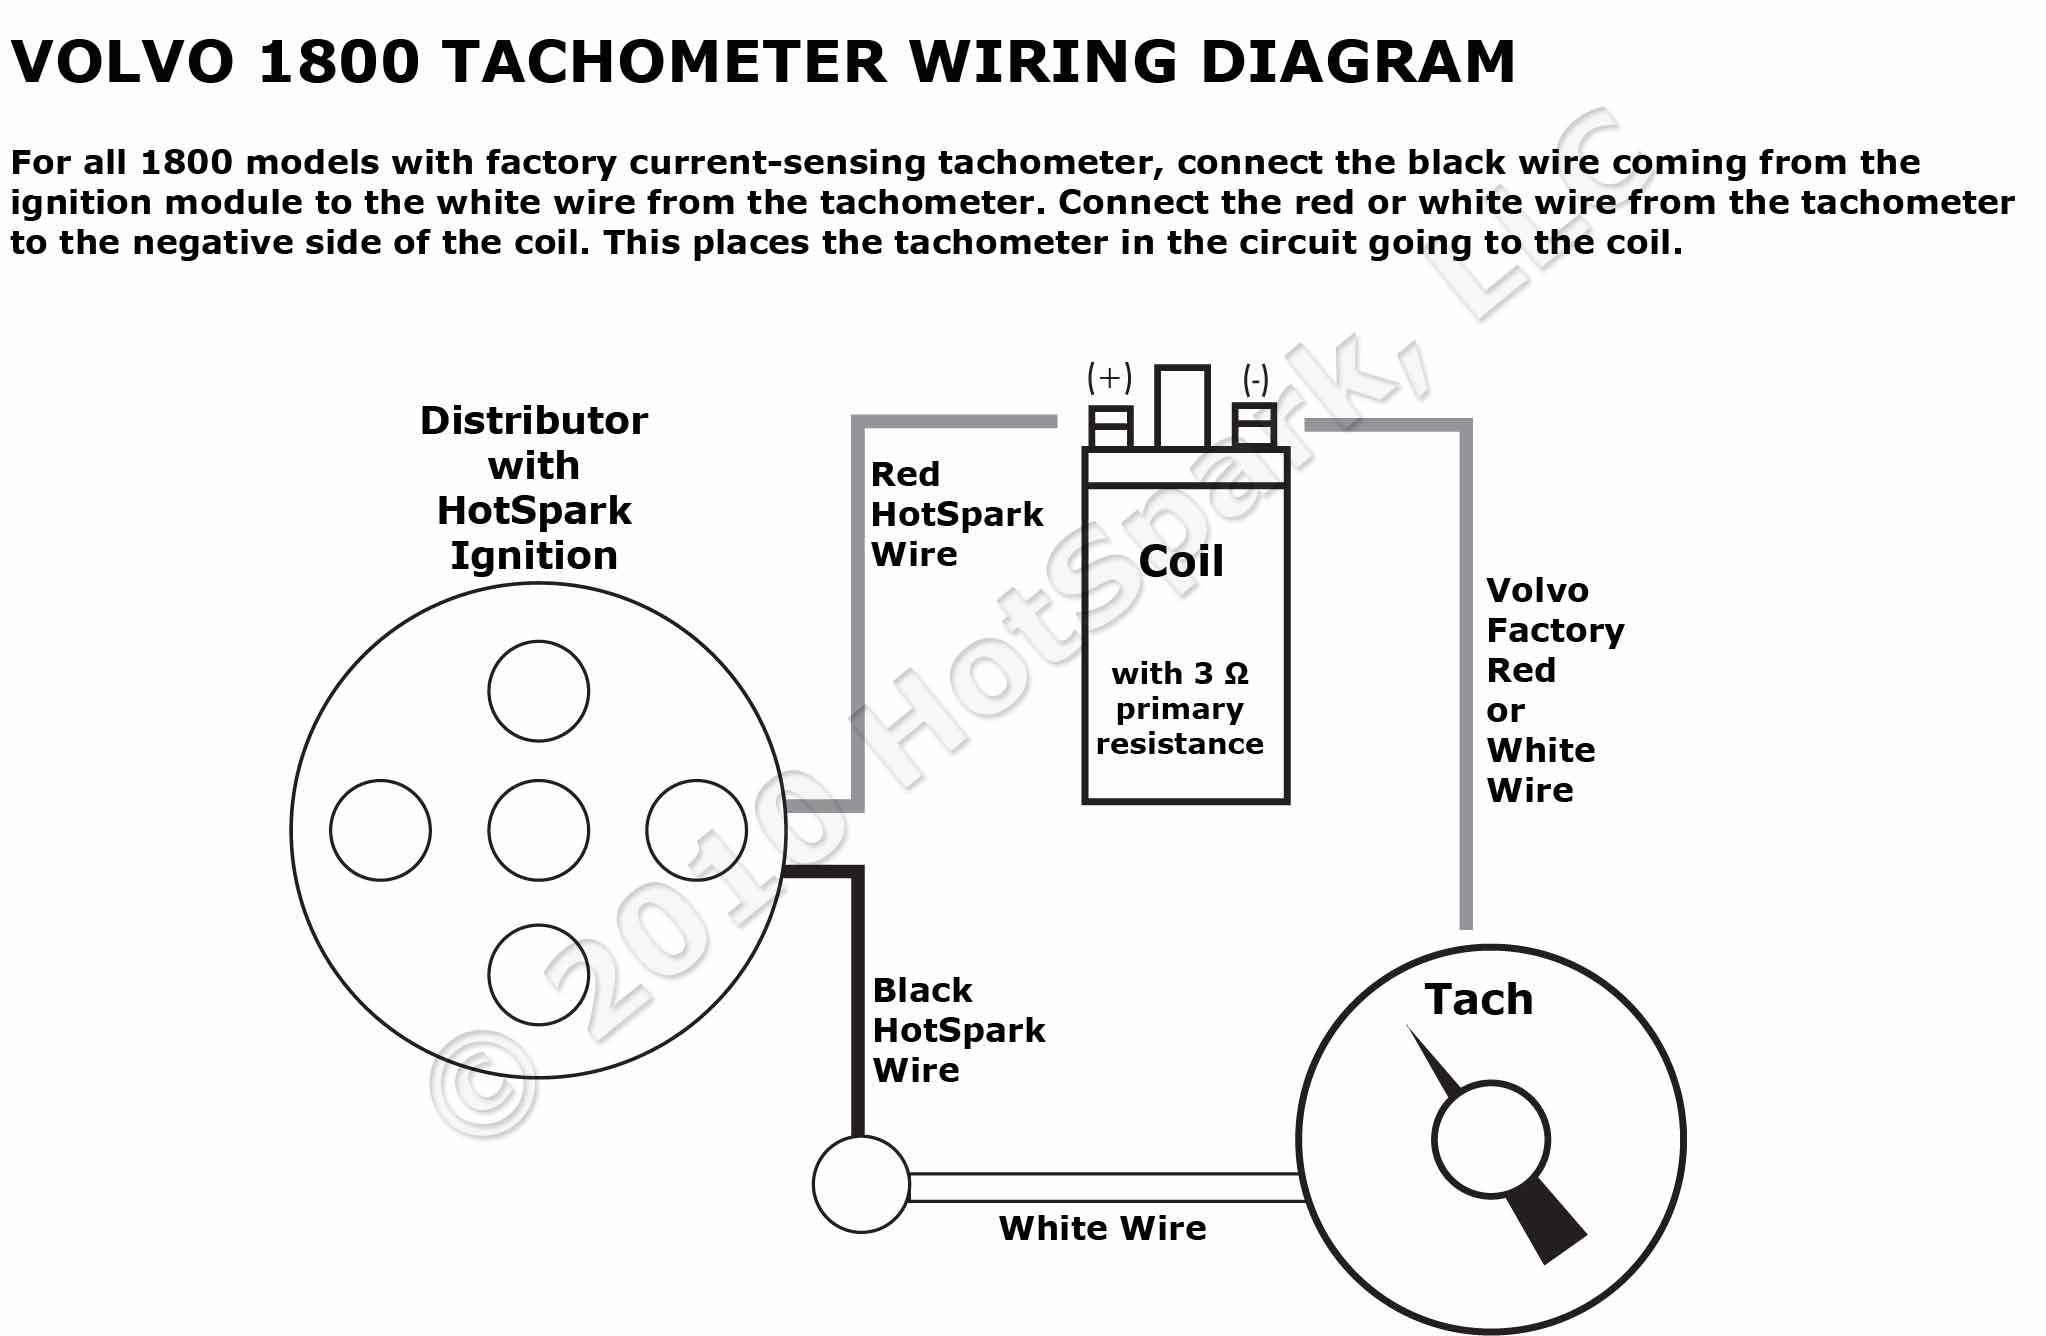 volvo wiring diagram volvo wiring diagrams volvo 1800 tachometer and hot spark wiring diagram